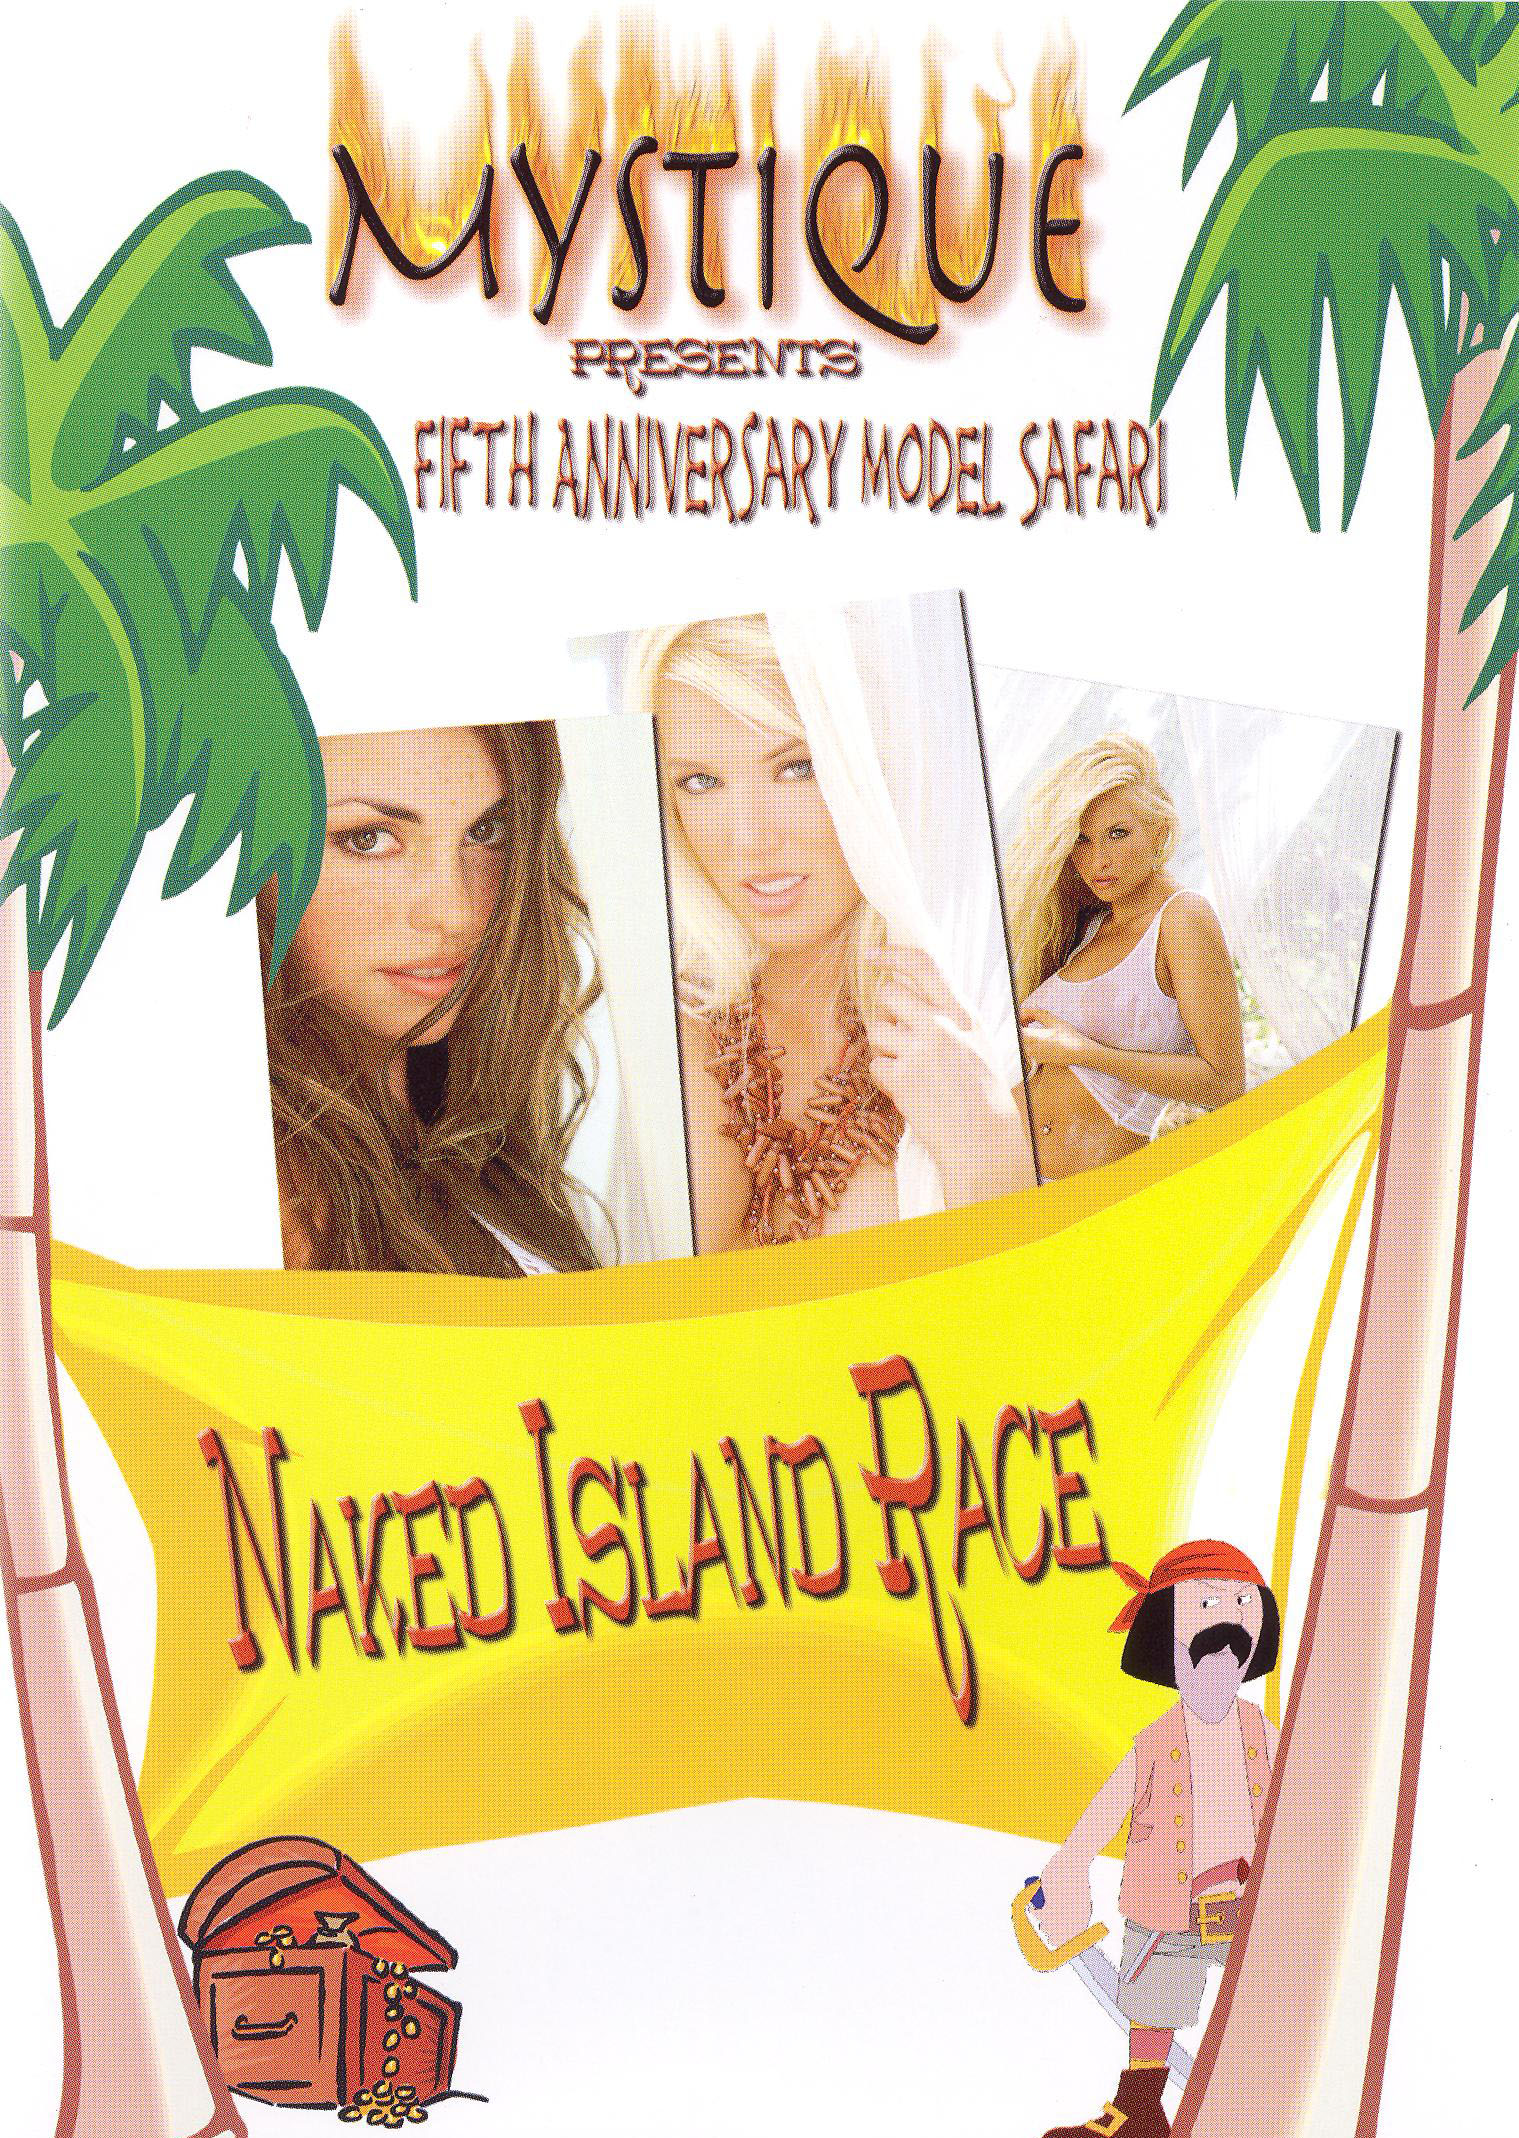 Mystique: Naked Island Race